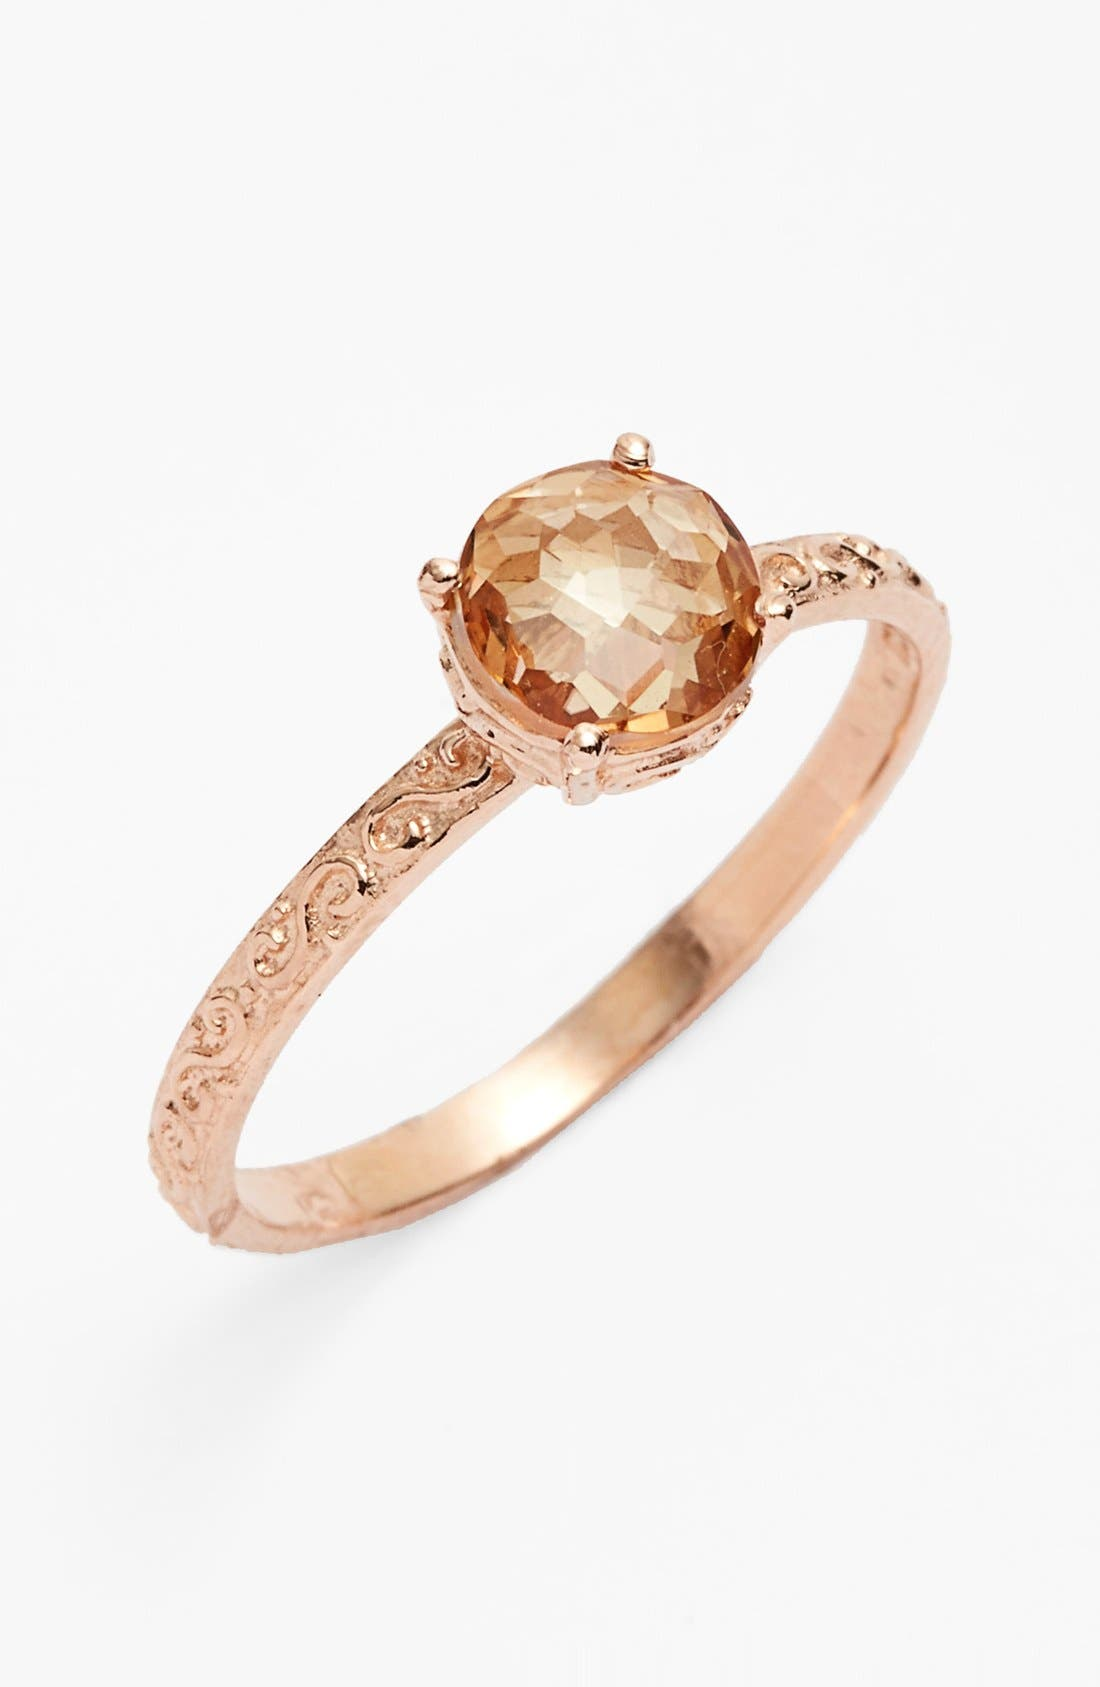 Main Image - KALAN by Suzanne Kalan Cushion Stone Filigree Ring